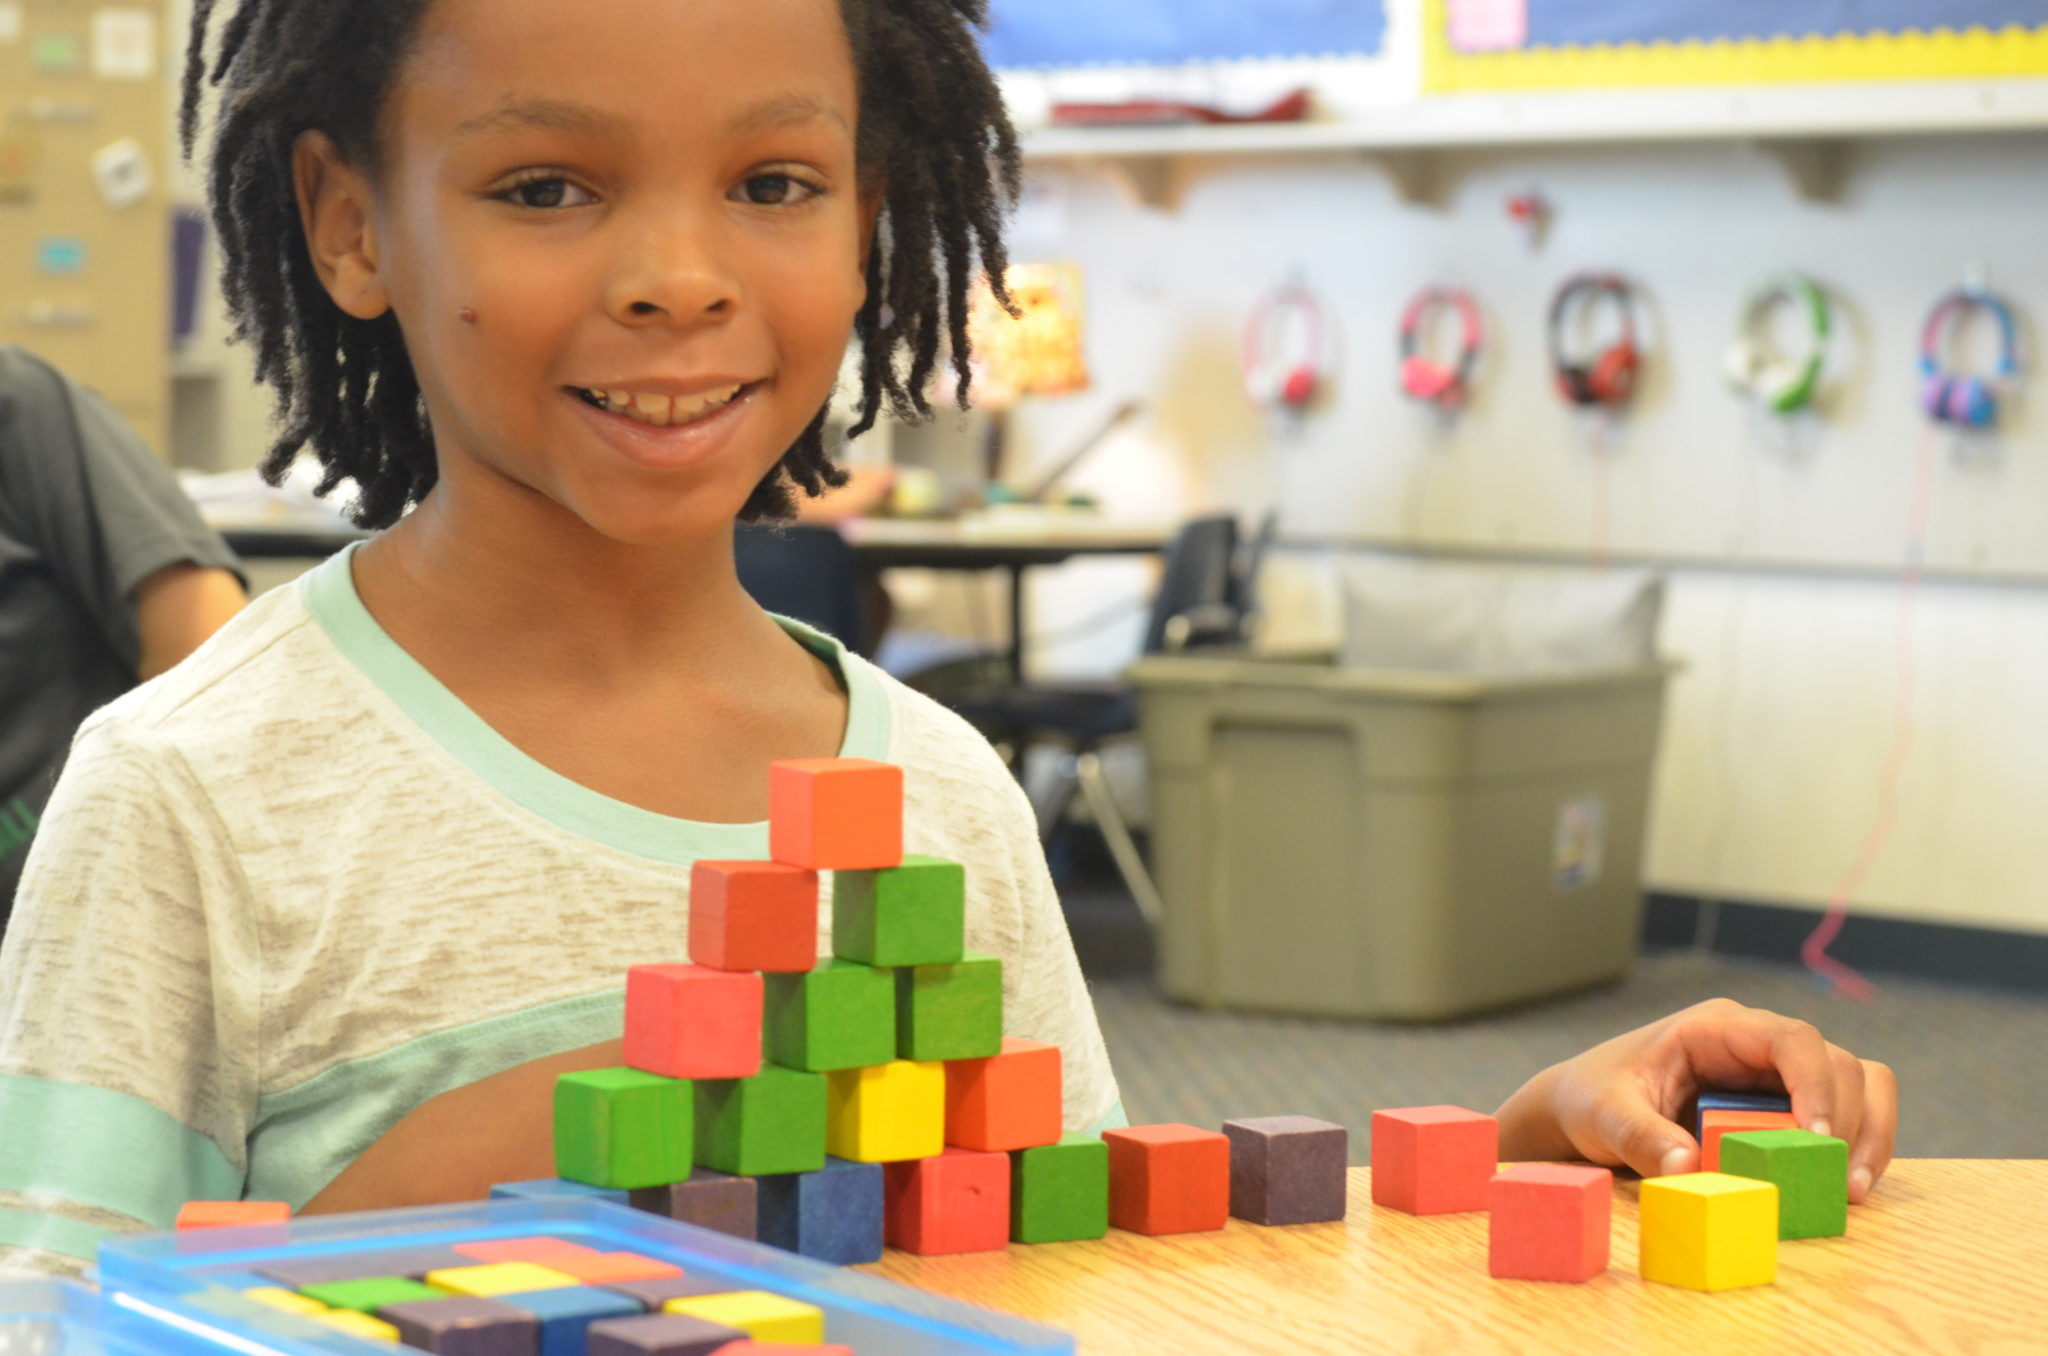 student building with small wooden blocks